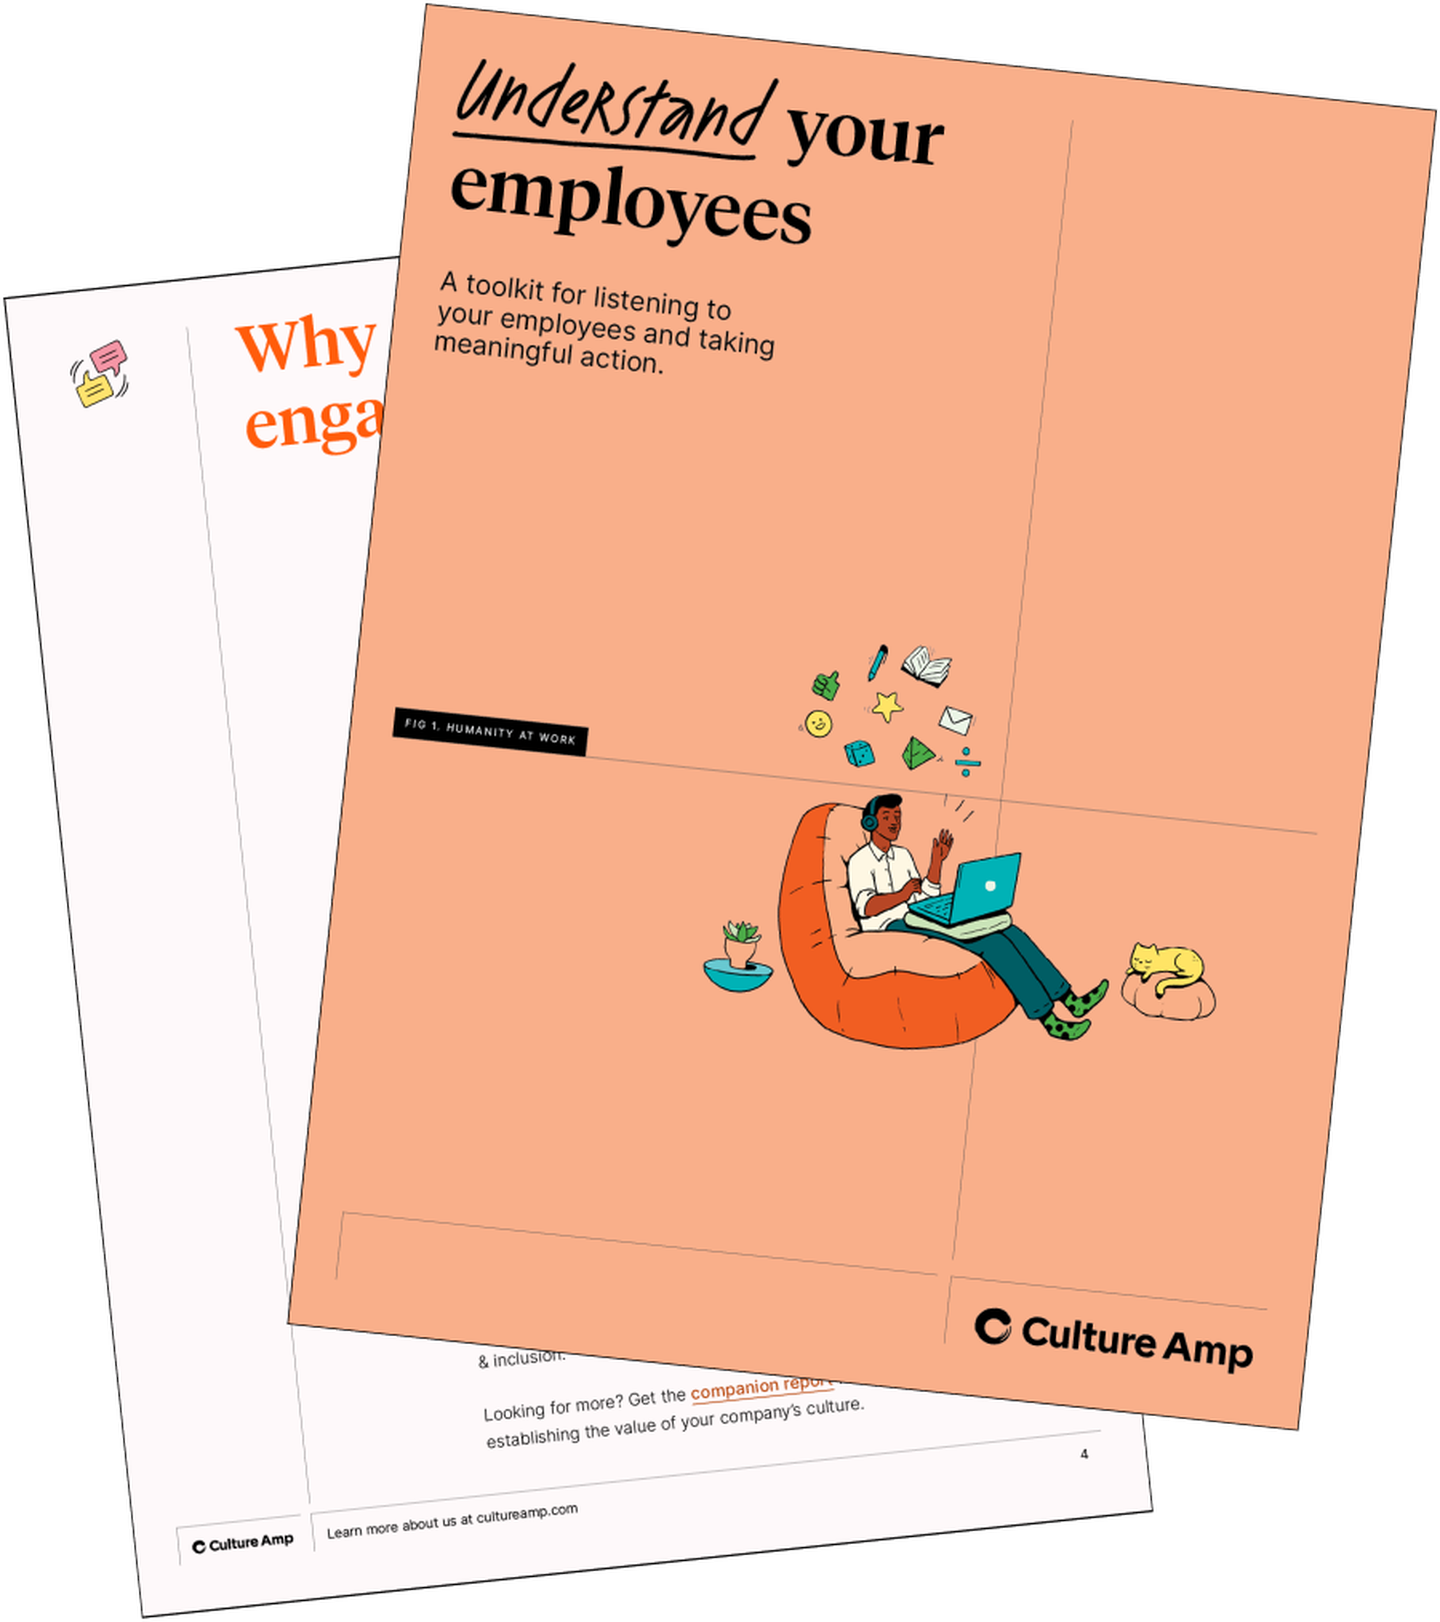 Humanity at work –understand your employees toolkit